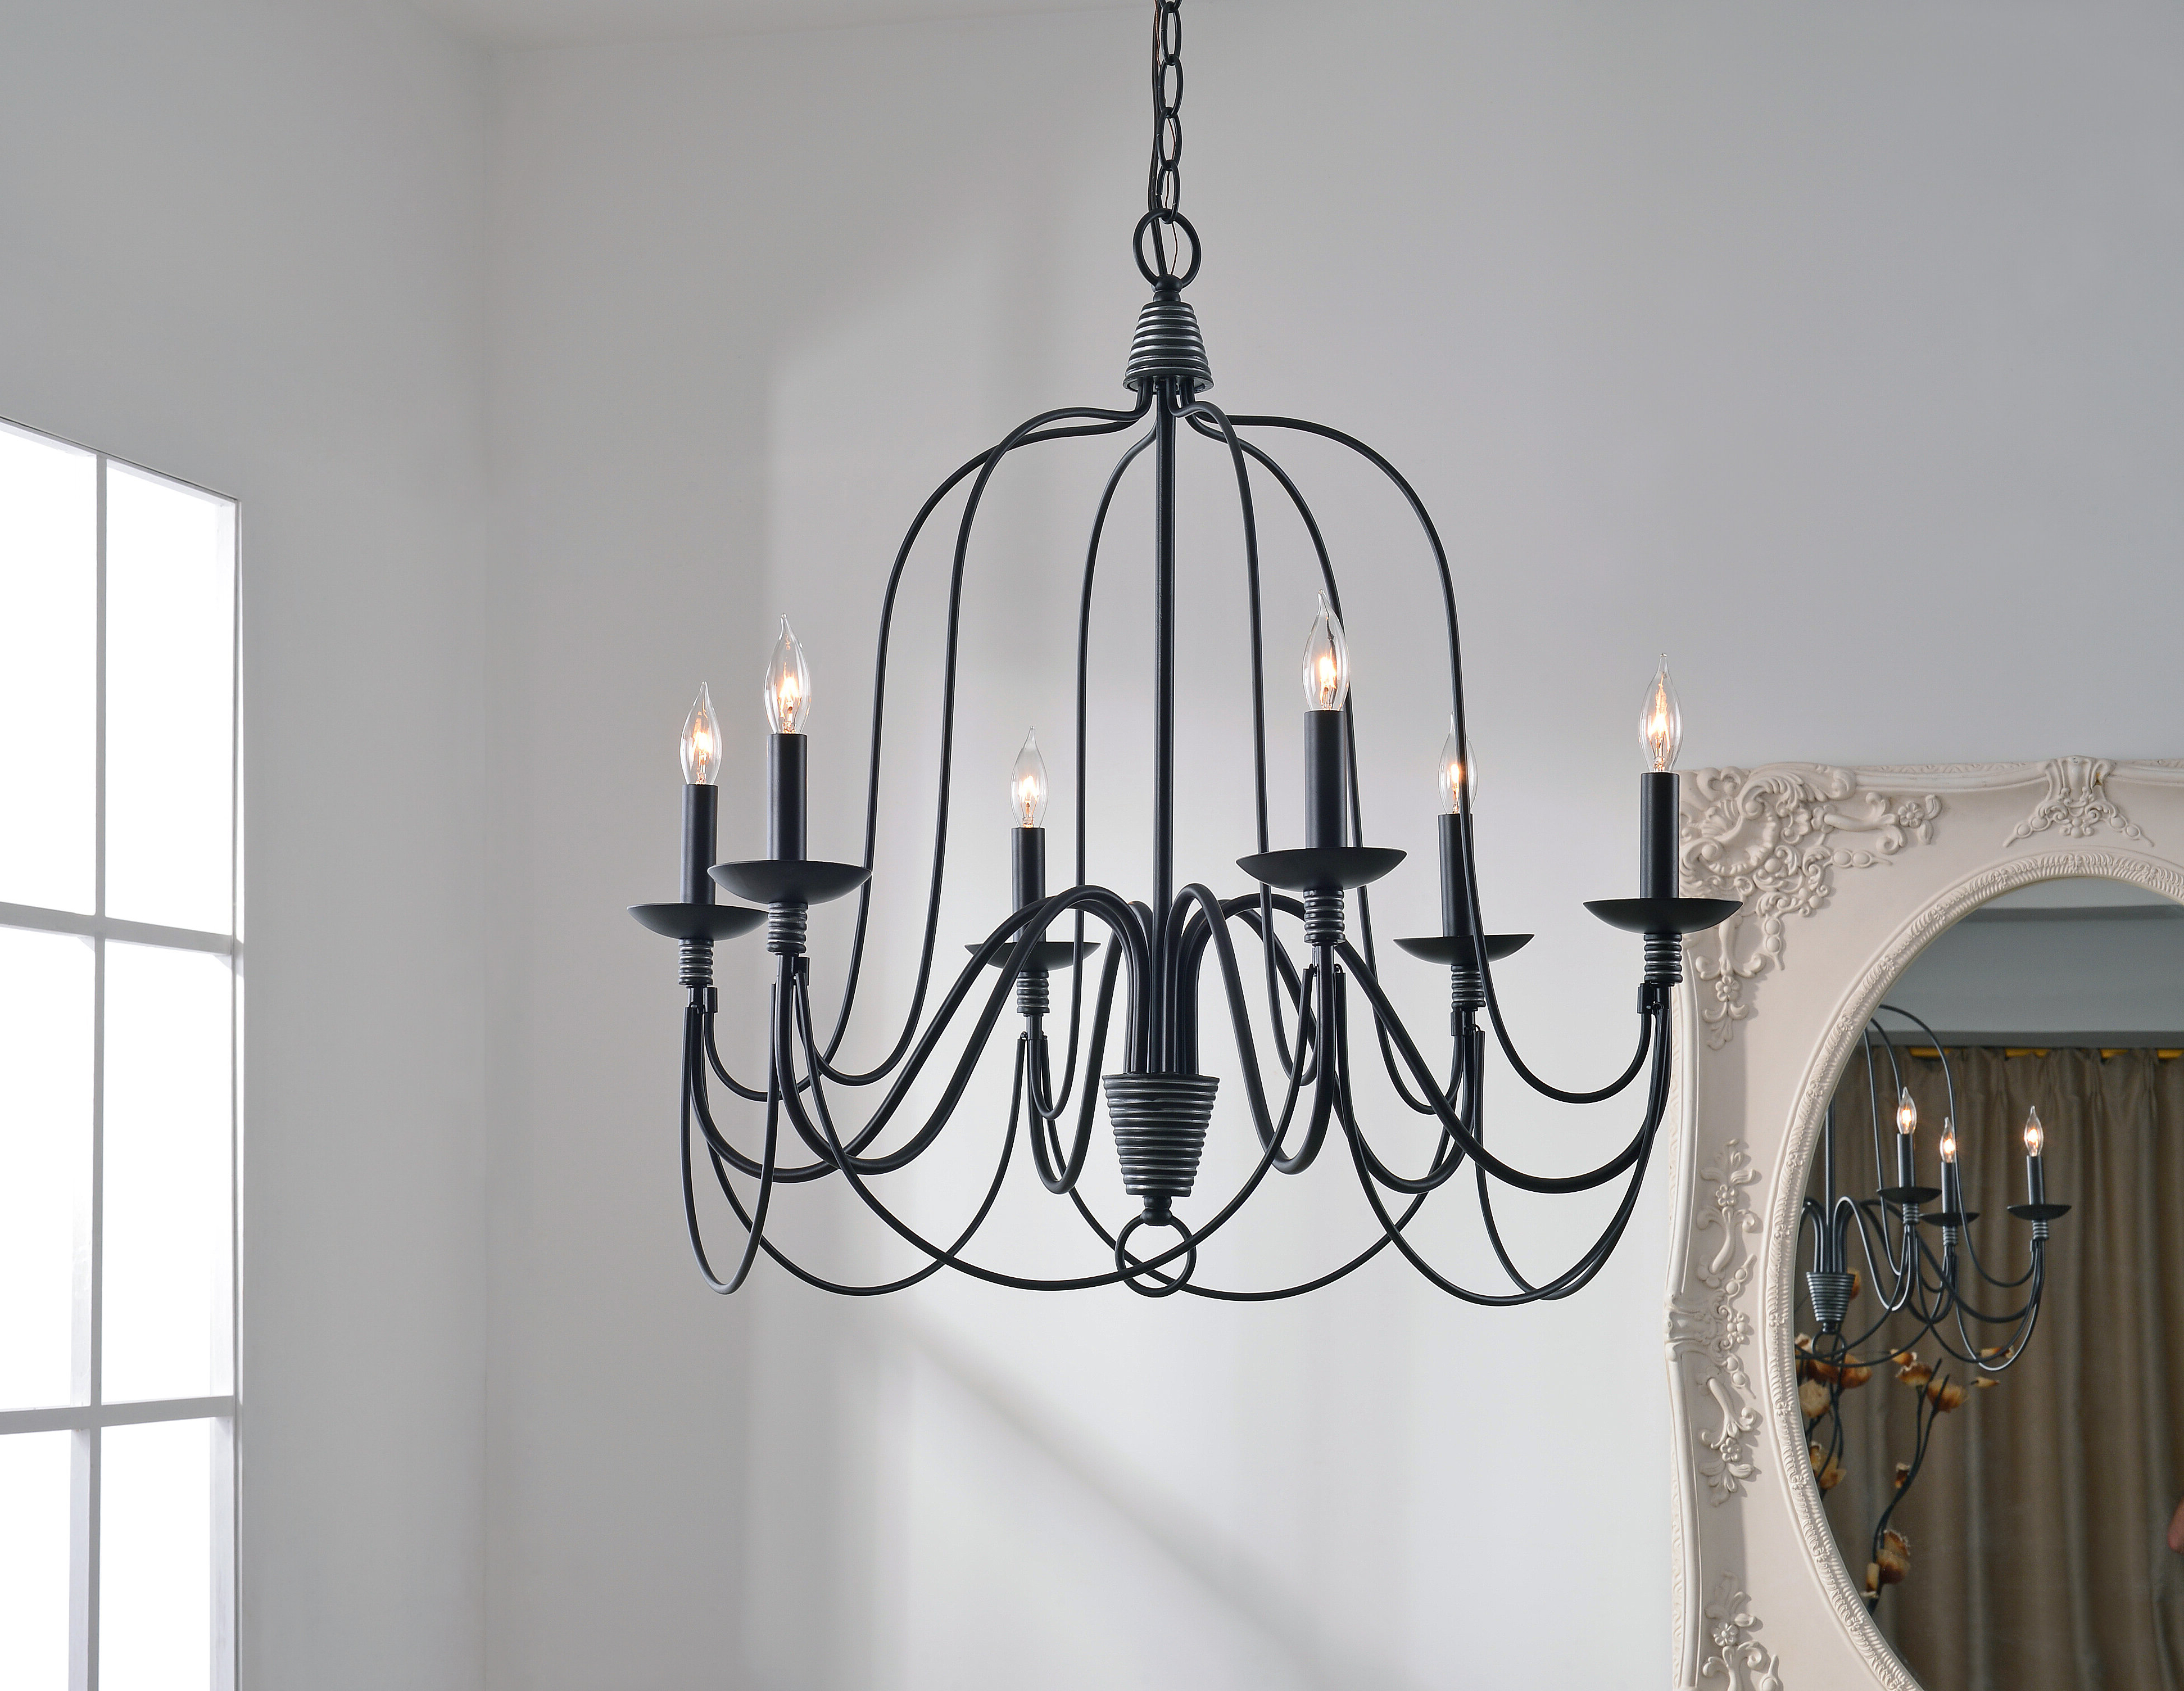 Widely Used Watford 6 Light Candle Style Chandelier Pertaining To Bennington 6 Light Candle Style Chandeliers (View 3 of 25)